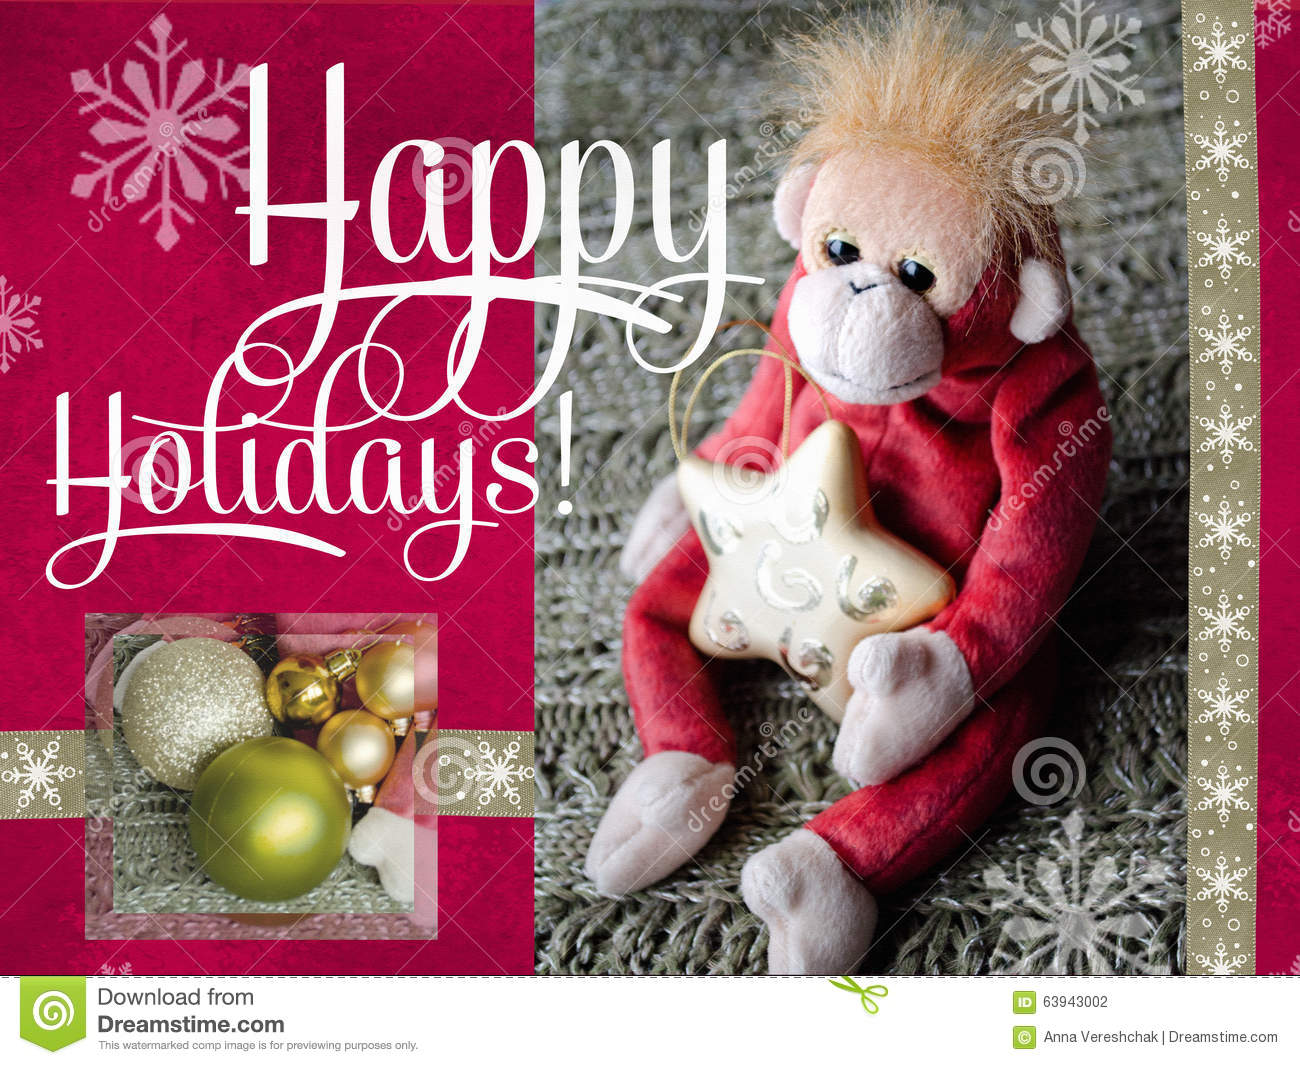 Happy holidays cards design. 2016 Year of the Monkey. Greeting card.